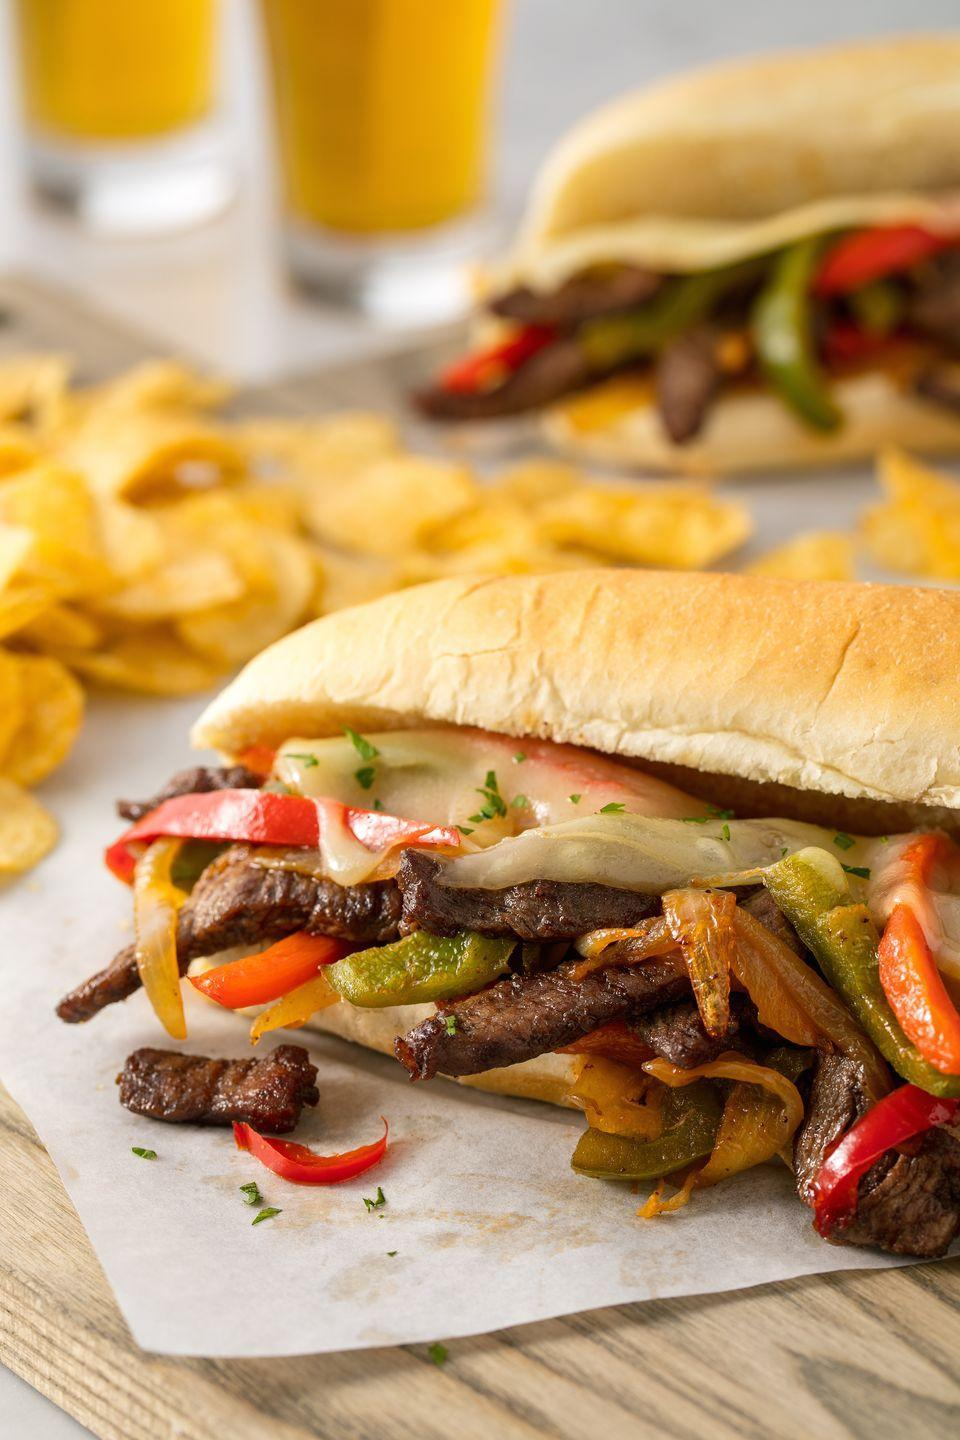 """<p>No trip to Philly required.</p><p>Get the recipe from <a href=""""https://www.delish.com/cooking/recipe-ideas/recipes/a54006/easy-homemade-philly-cheesesteak-recipe/"""" rel=""""nofollow noopener"""" target=""""_blank"""" data-ylk=""""slk:Delish"""" class=""""link rapid-noclick-resp"""">Delish</a>.</p>"""